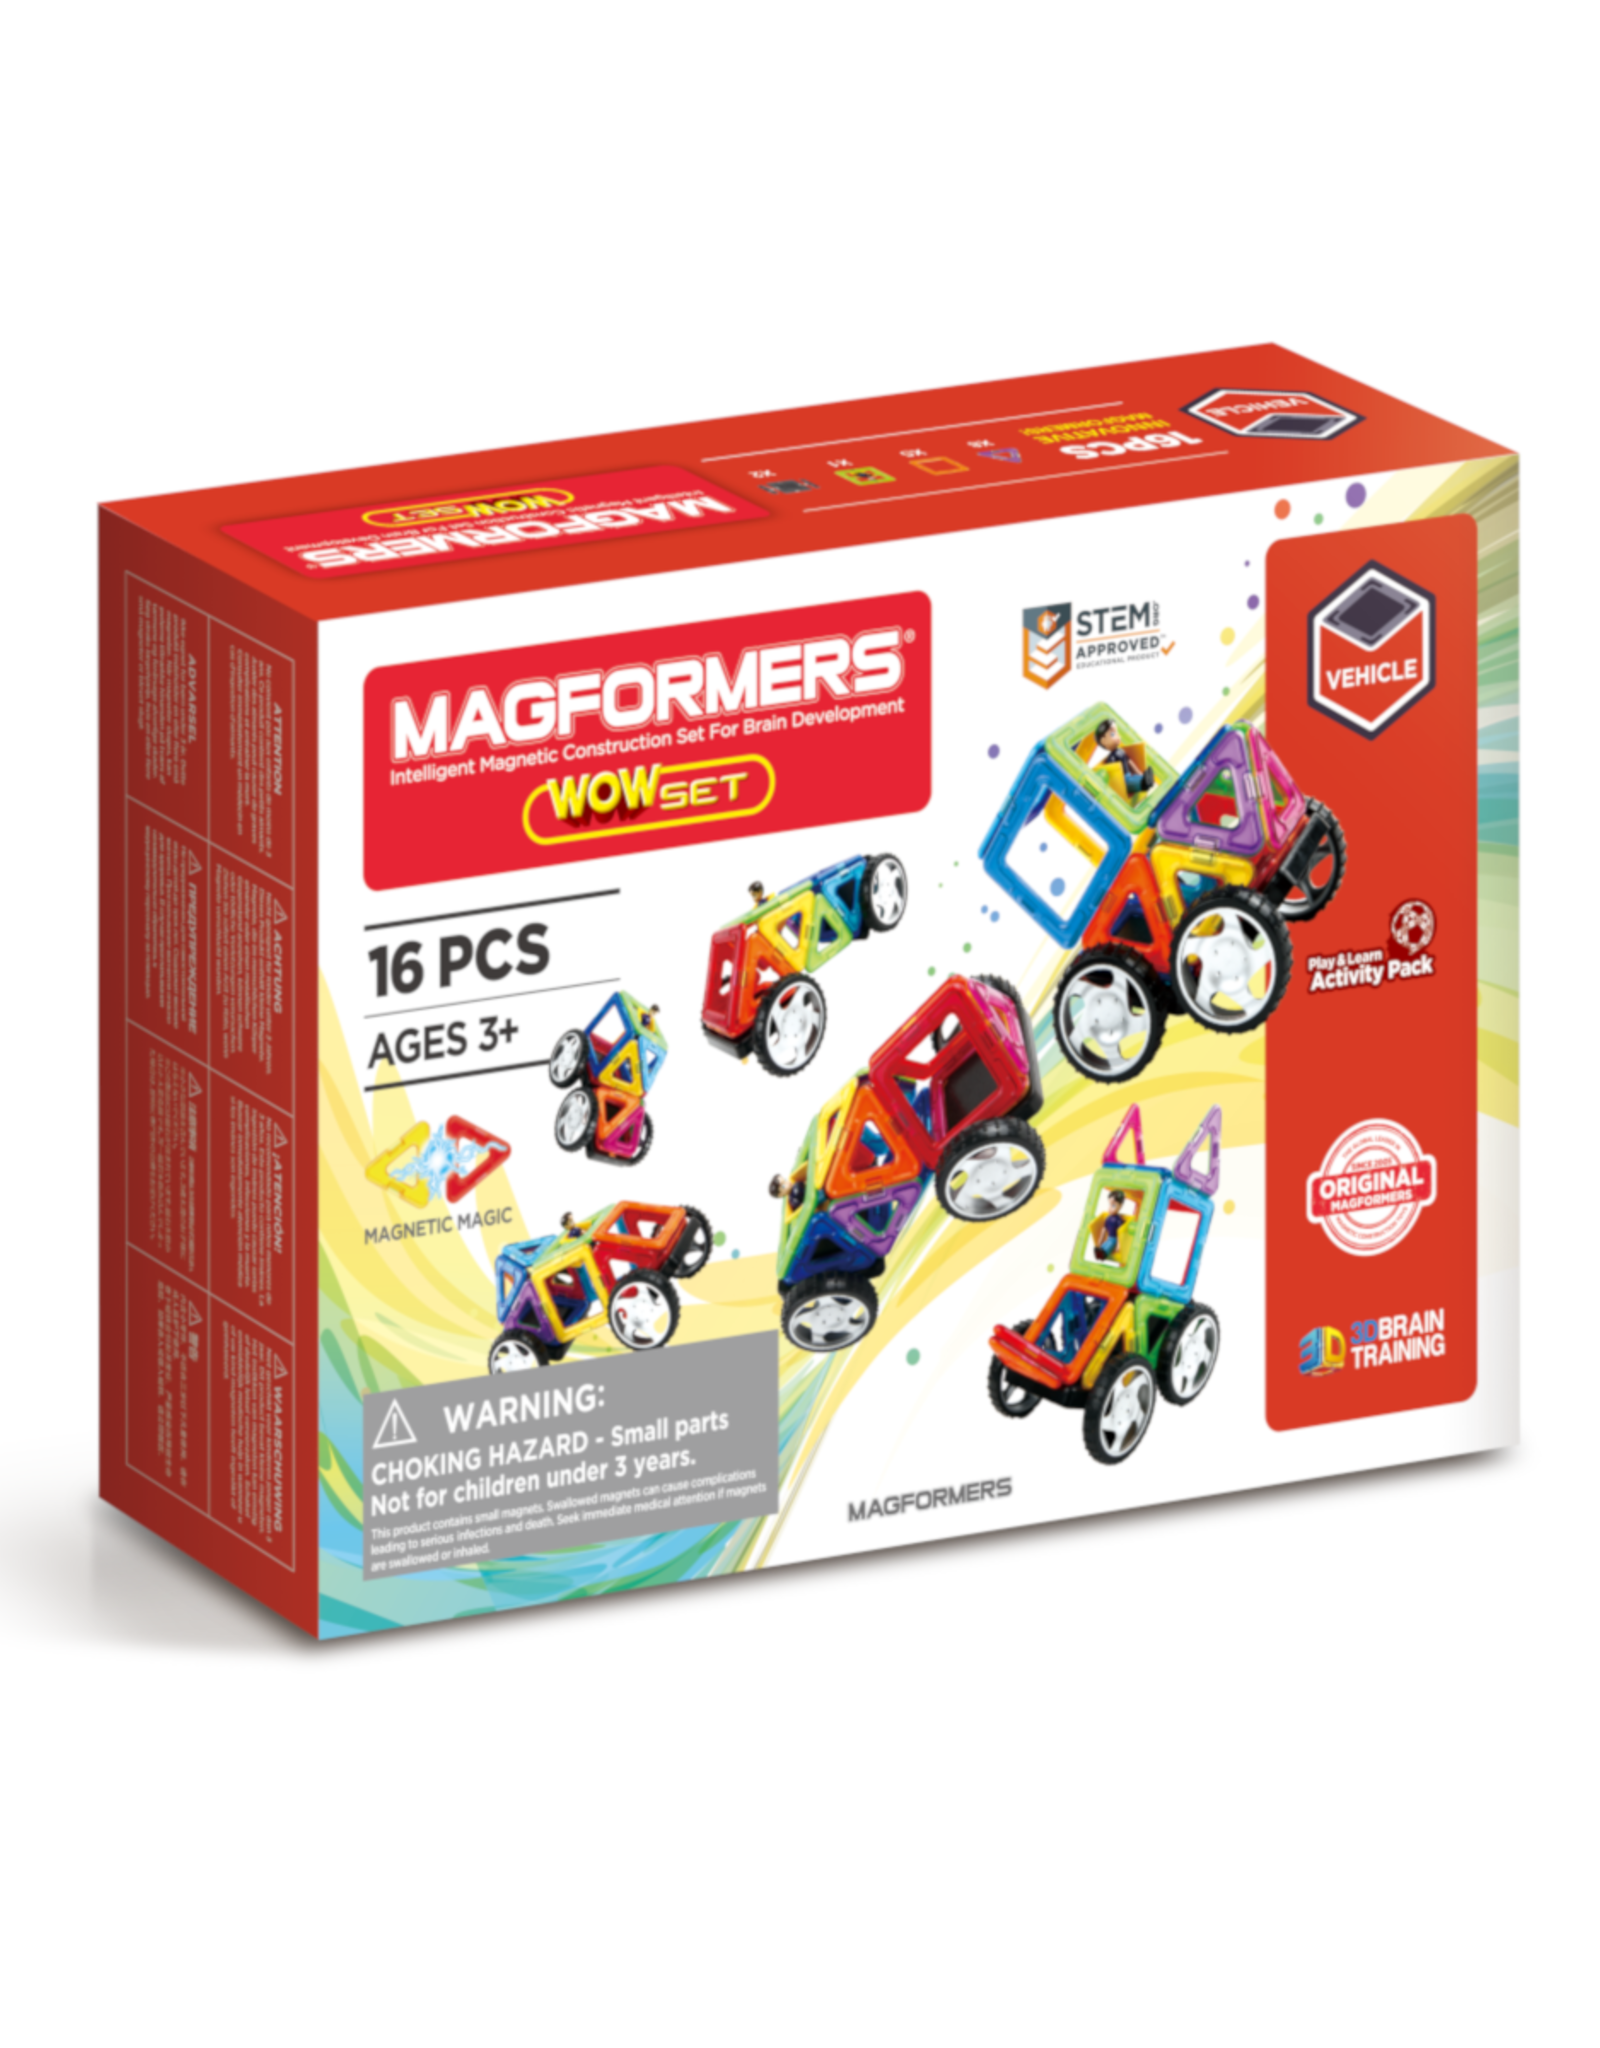 Magformers - WOW Set